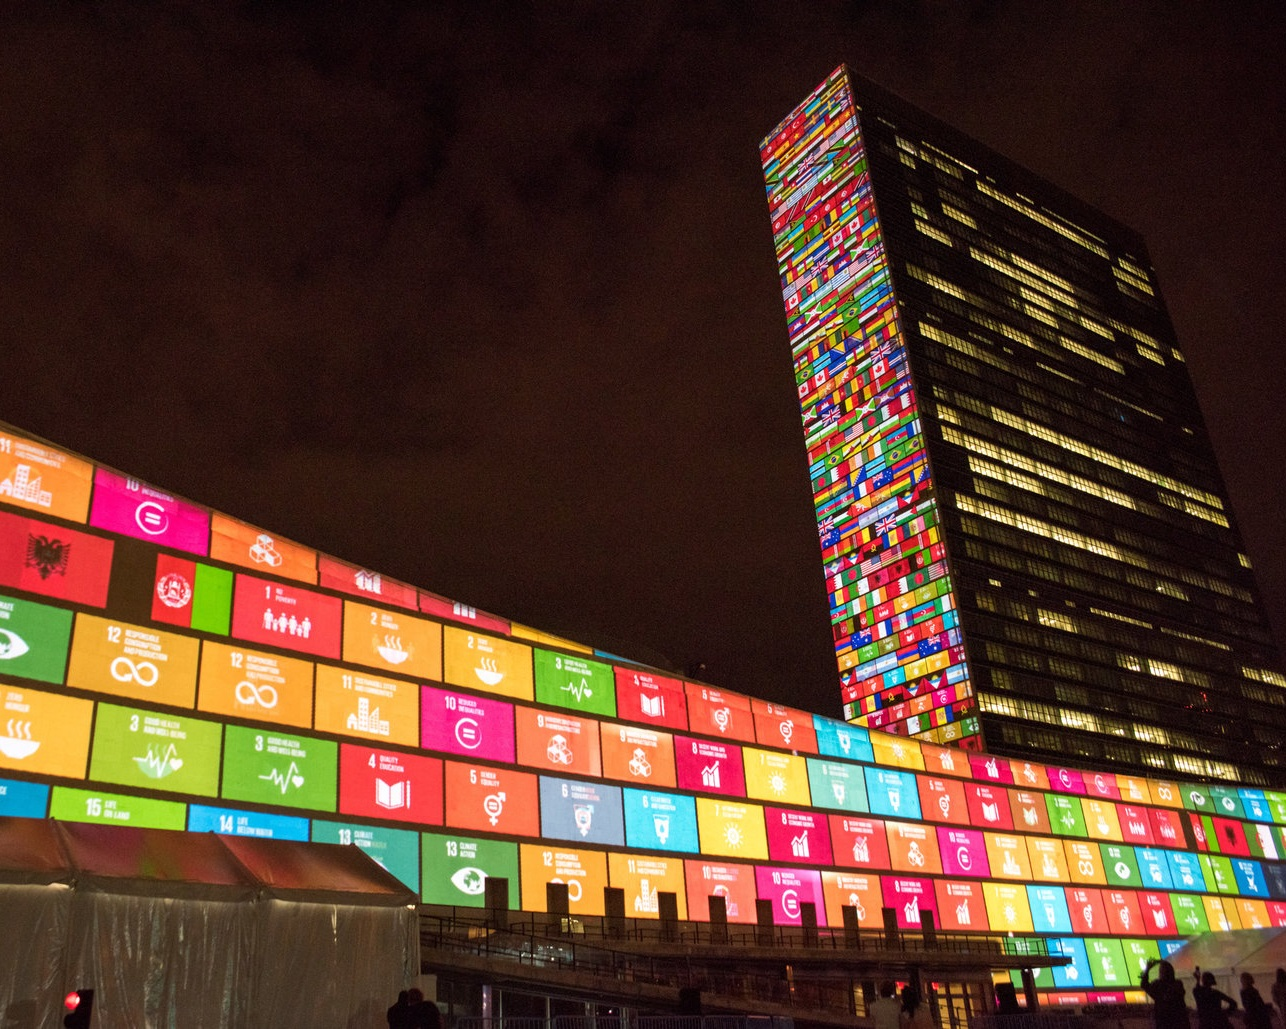 SDGs - The Sustainable Development Goals - On September 25th, 2015, 193 member states of the United Nations adopted a set of 17 Sustainable Development Goals, which serve as a guide to the social, economic and environmental actions everybody takes to achieve a sustainable future by the year 2030. This landmark agreement serves as a framework of global aspirations for the world to commit to in order to address the biggest global challenges of our time. They call upon all stakeholders - governments, businesses, civil society, academia and of course, youth, to work together in creating solutions that will meet the goals and their targets.Learn More About SDGs